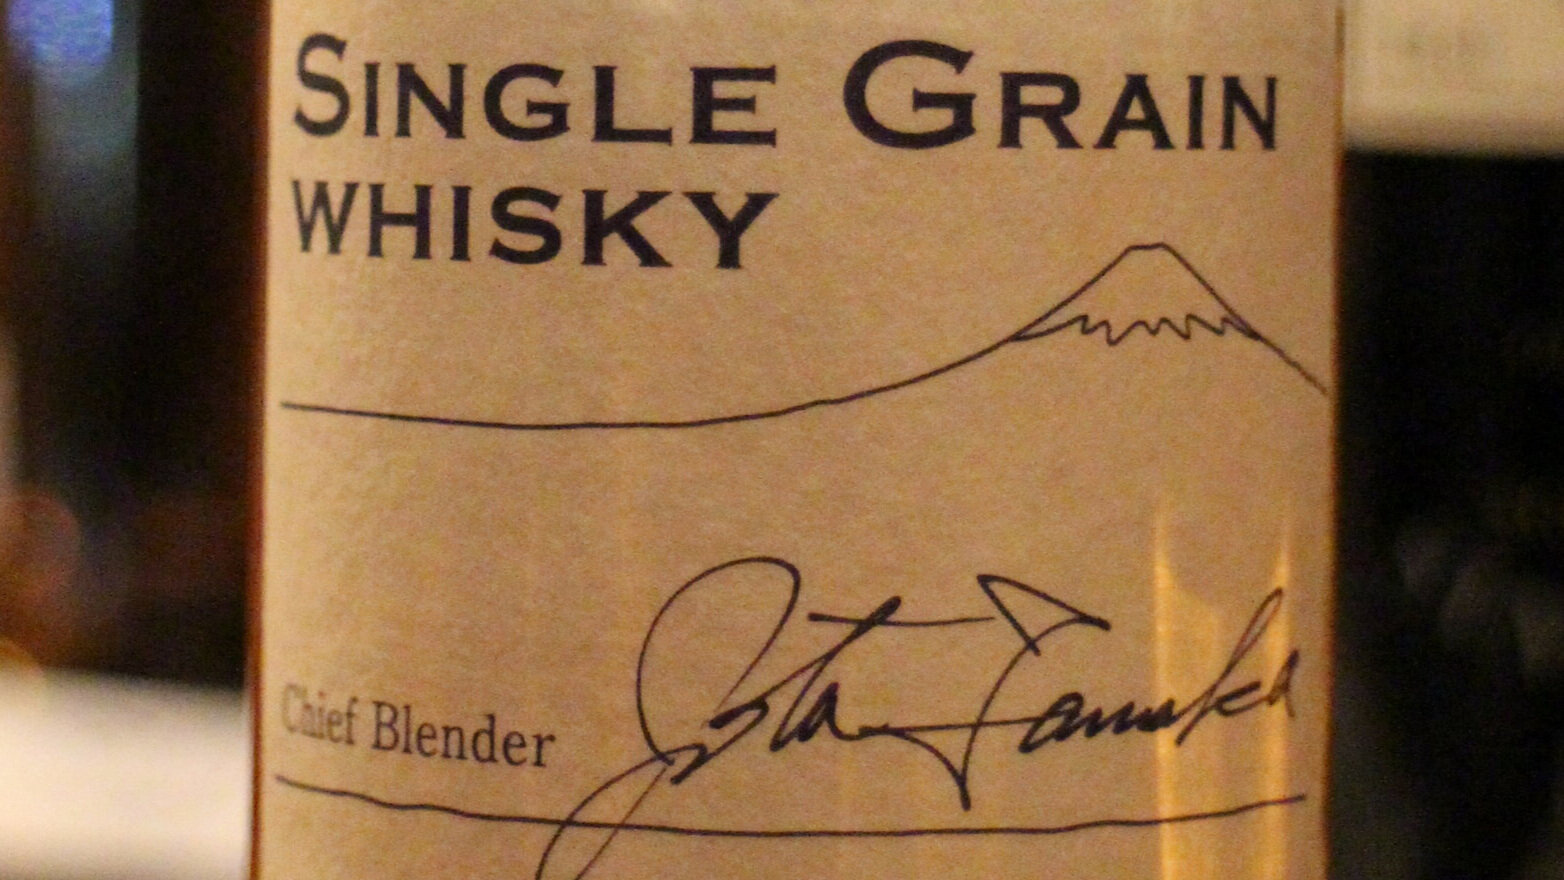 Single Grain Scotch Whisky